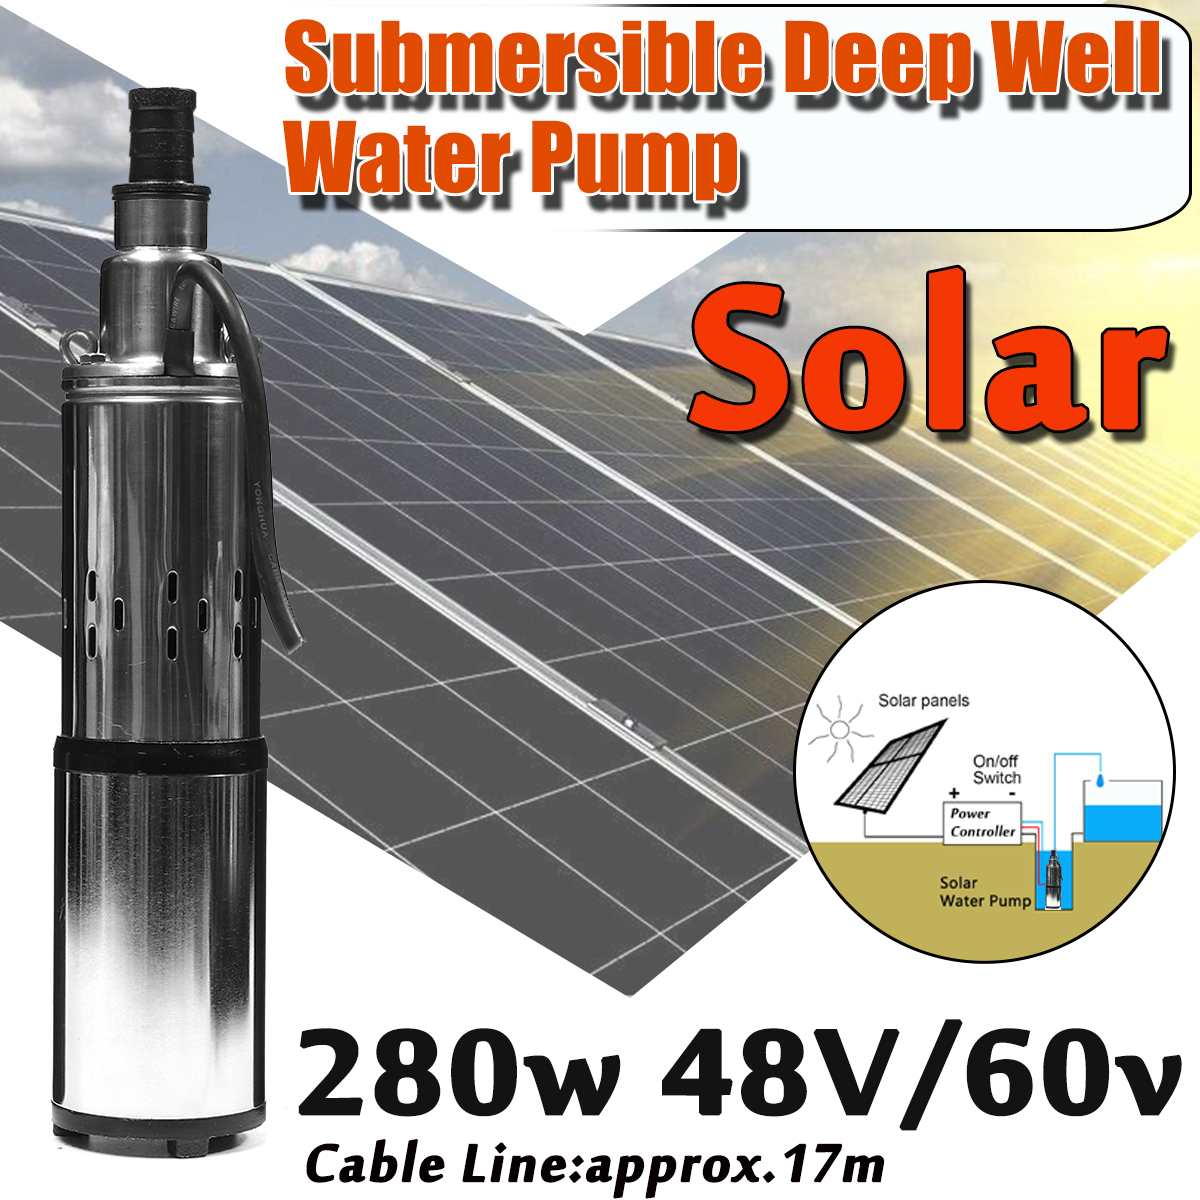 Solar Water Pump 48V/60V 280W 16L/Min 40M Deep Well Submersible Water Pump for Irrigation Garden Engineering